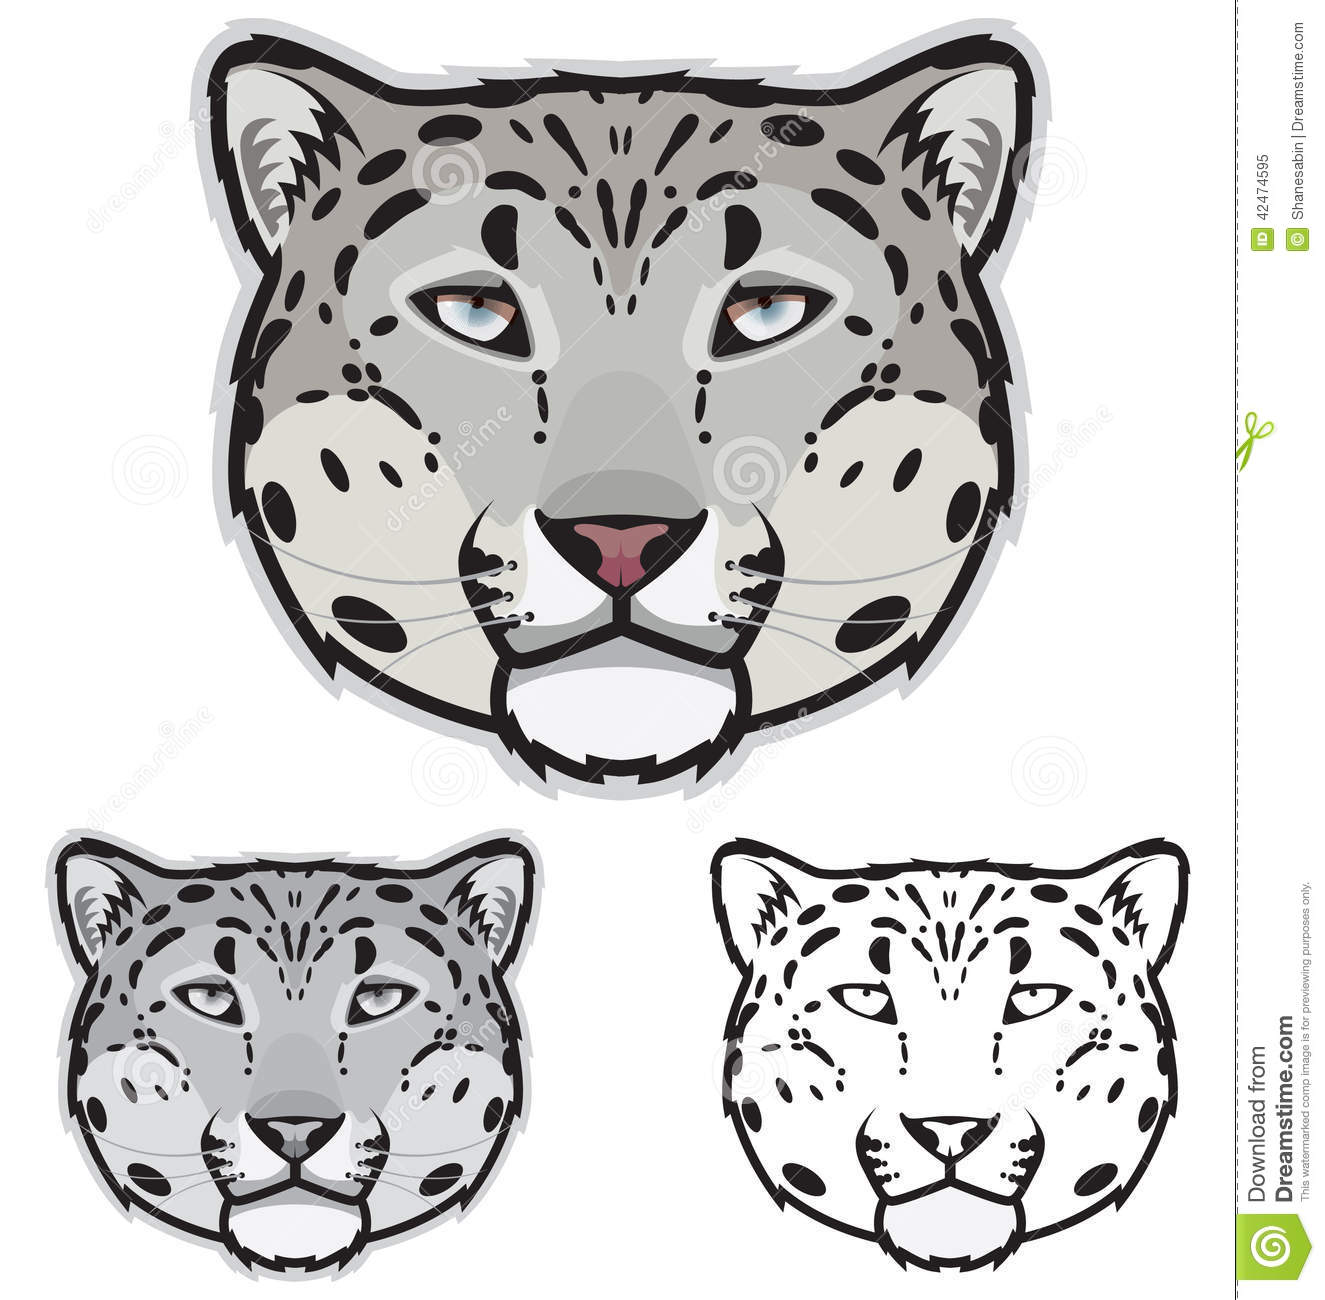 Snow Leopard Faces stock vector. Illustration of leopard - 42474595 for Leopard Clipart Black And White  173lyp